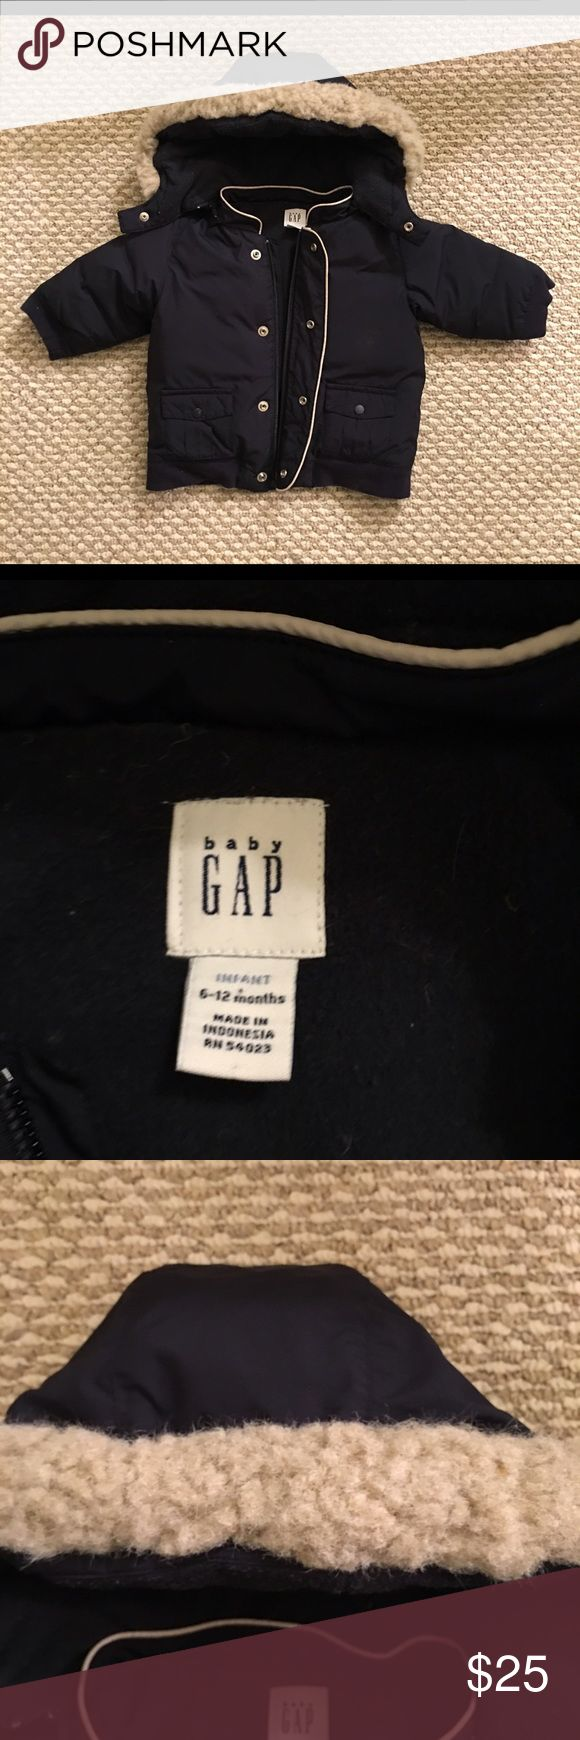 Gap jacket Gap navy blue very warm jacket, perfect for this fall/winter. I wish my little guy still fits it! Pretty good condition, the fur on the hoodie had been washed so it doesn't look like b4. Otherwise the jacket is in perfect condition. GAP Jackets & Coats Puffers